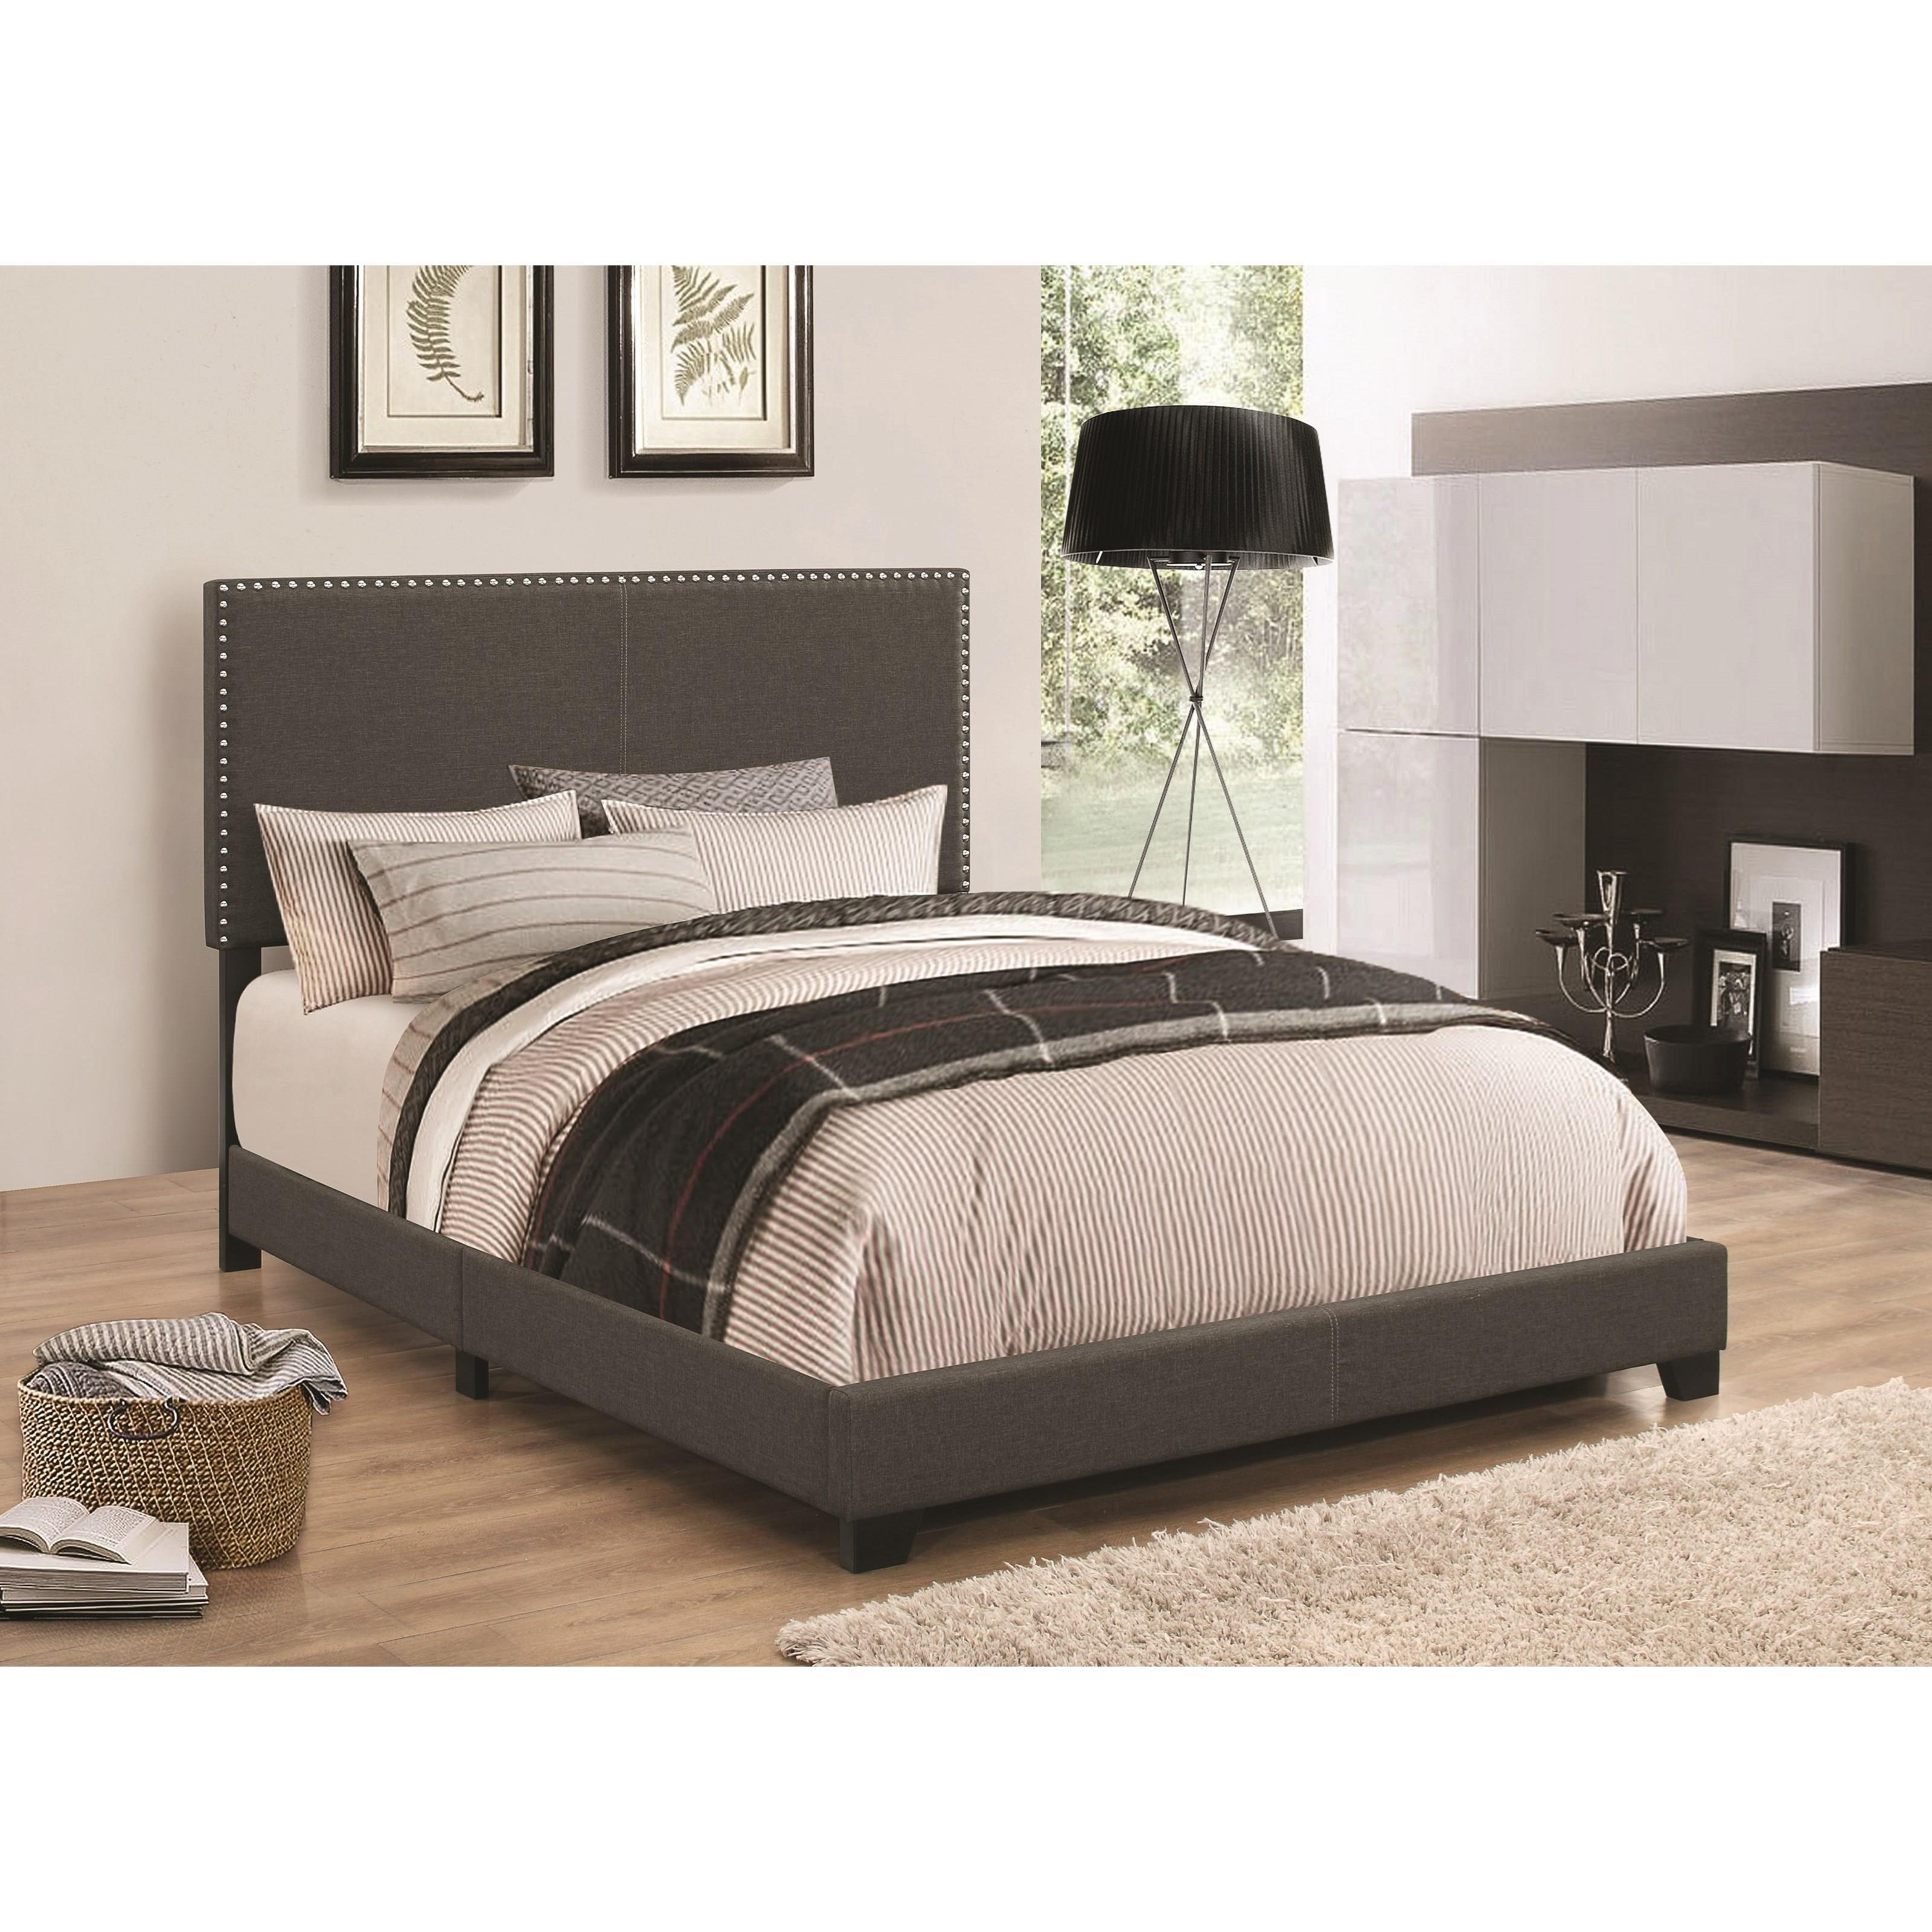 Coaster upholstered beds 350061f upholstered full bed with for Upholstered beds